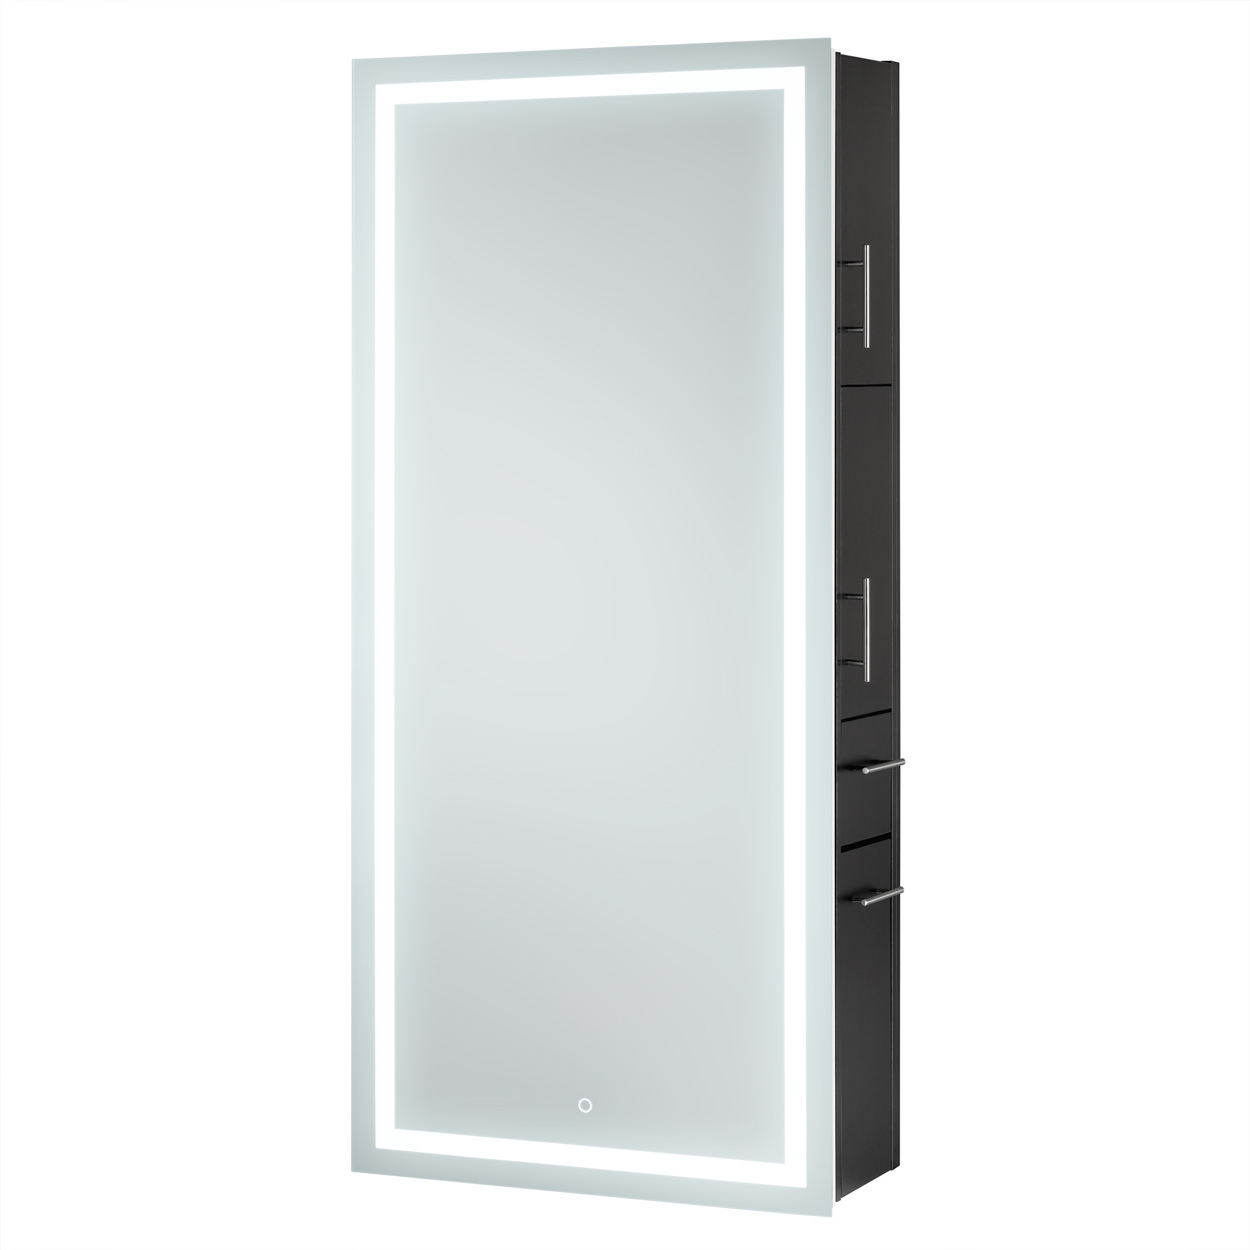 Pibbs Lumina Wall Hanging Styling Station with LED Lighted Mirror  main product image